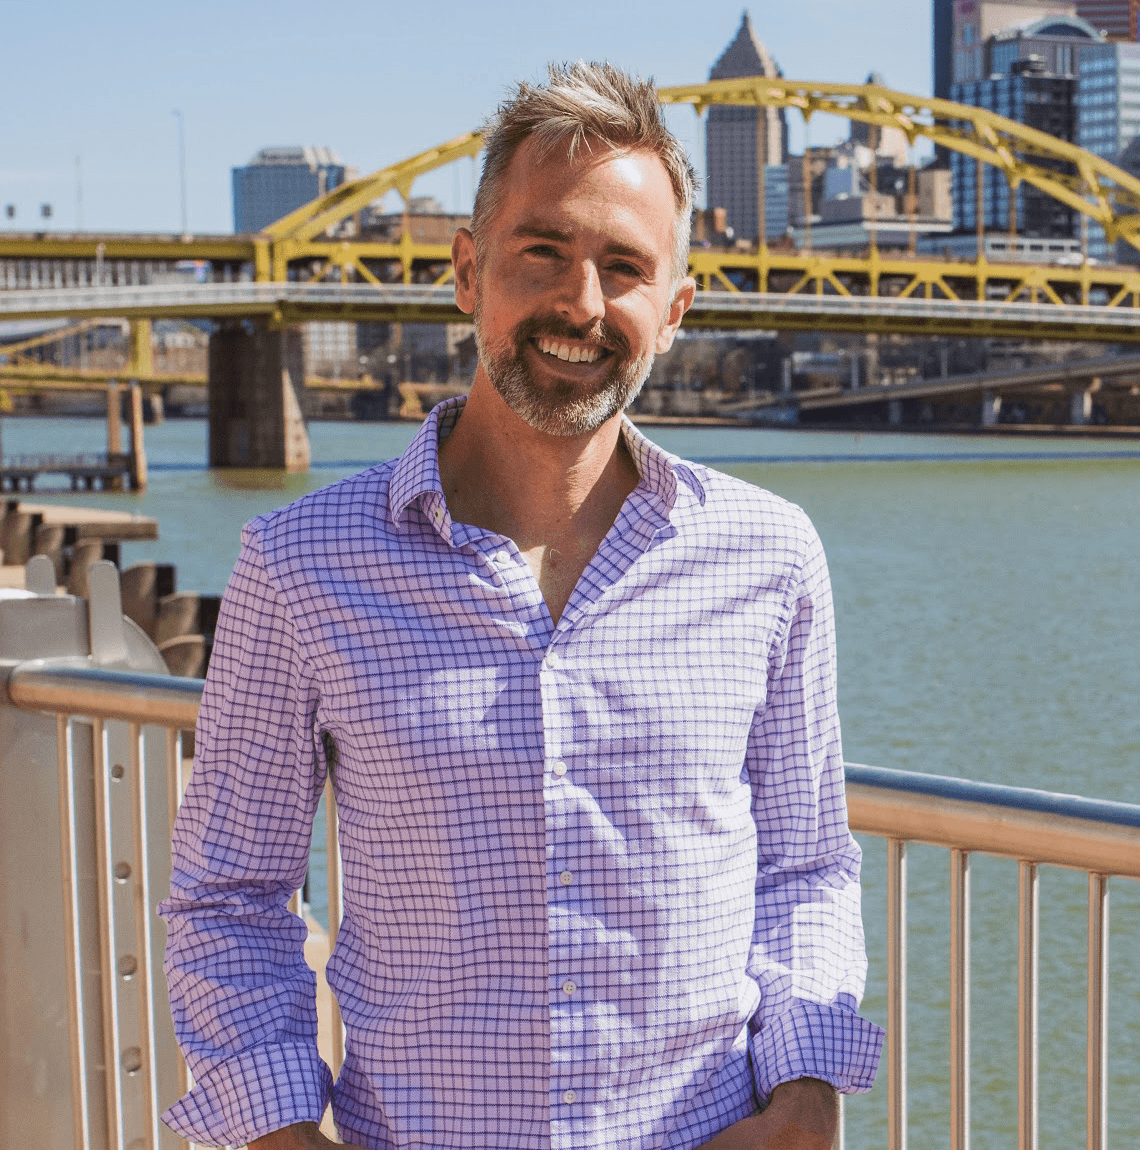 photo of White man with gray hair and beard in button-down shirt stands in front of river, bridge and cityscape